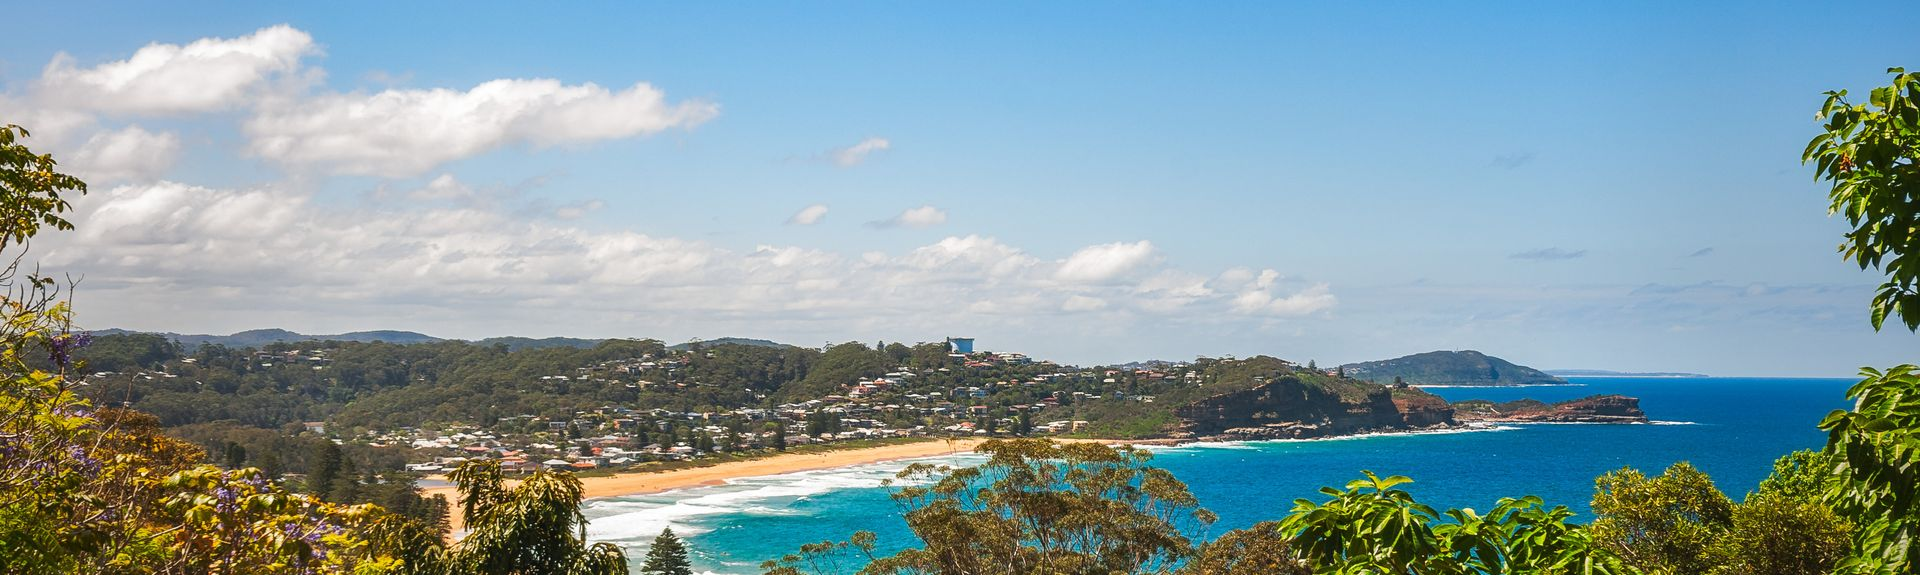 Avoca Beach, New South Wales, Australien